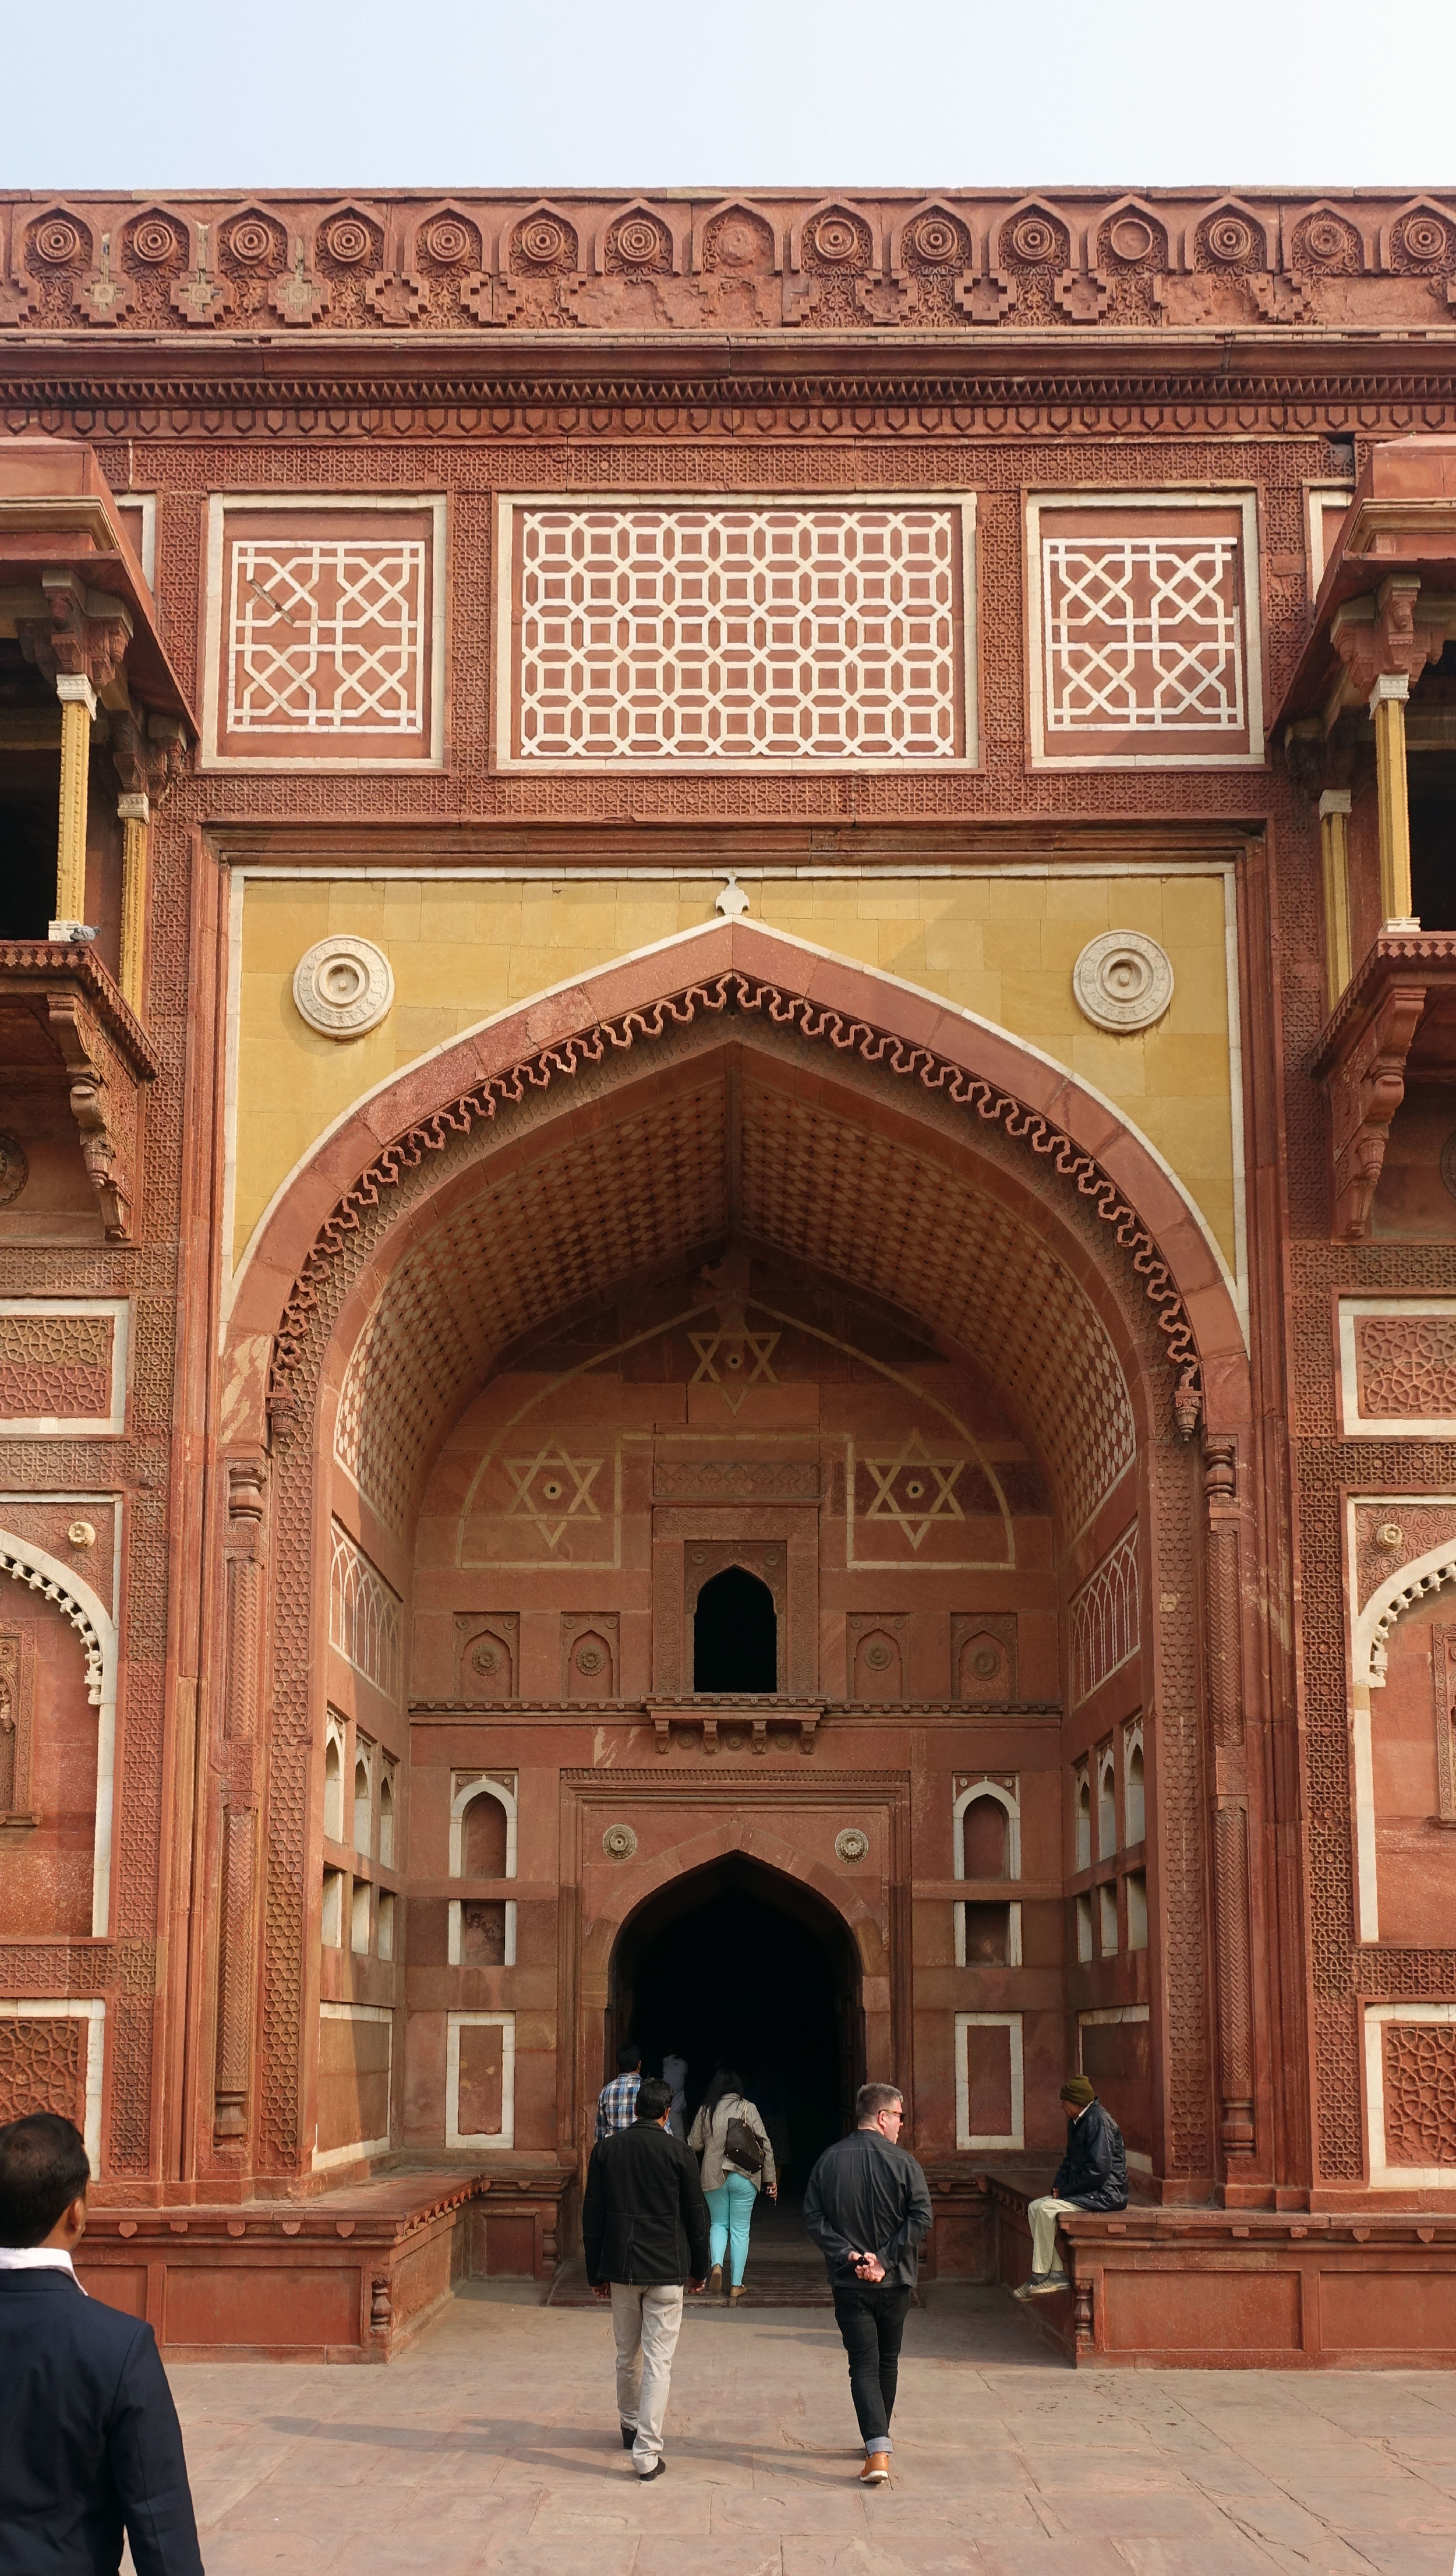 The entrance to  Jahangir Palace, complete with Buddhist, Christian, Muslim and Hindu religious iconography to welcome people from all walks of life